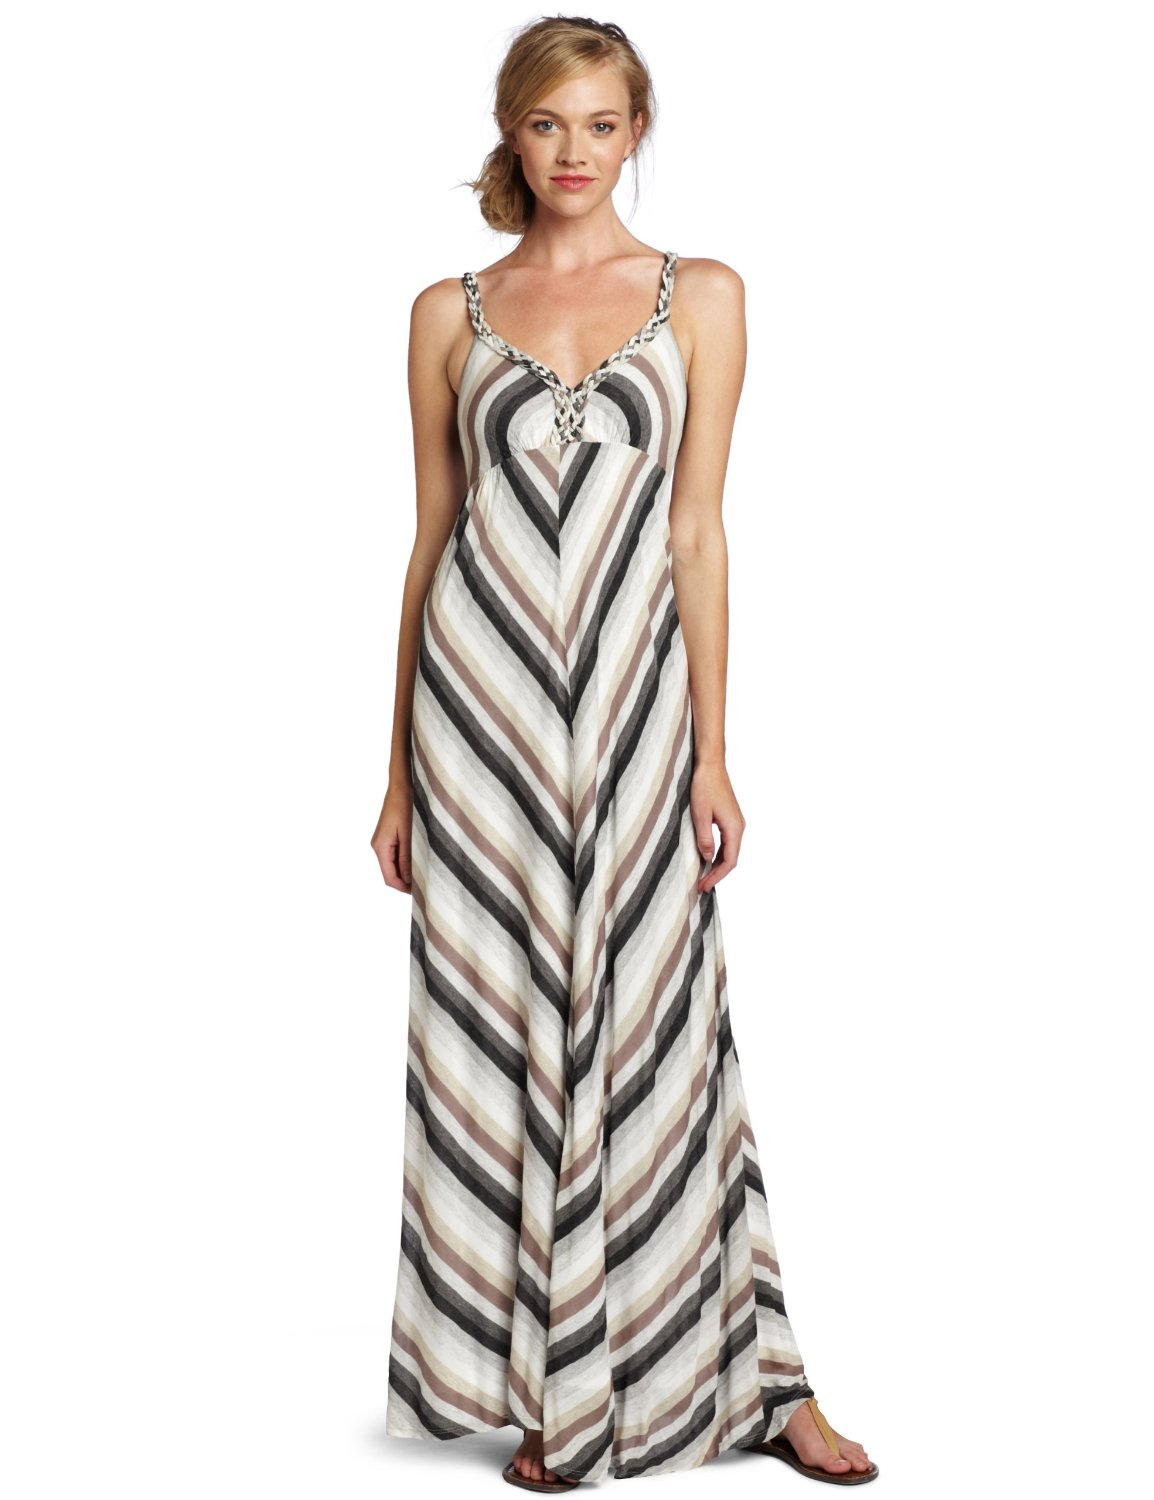 Ella moss Women's Dixie Maxi Dress